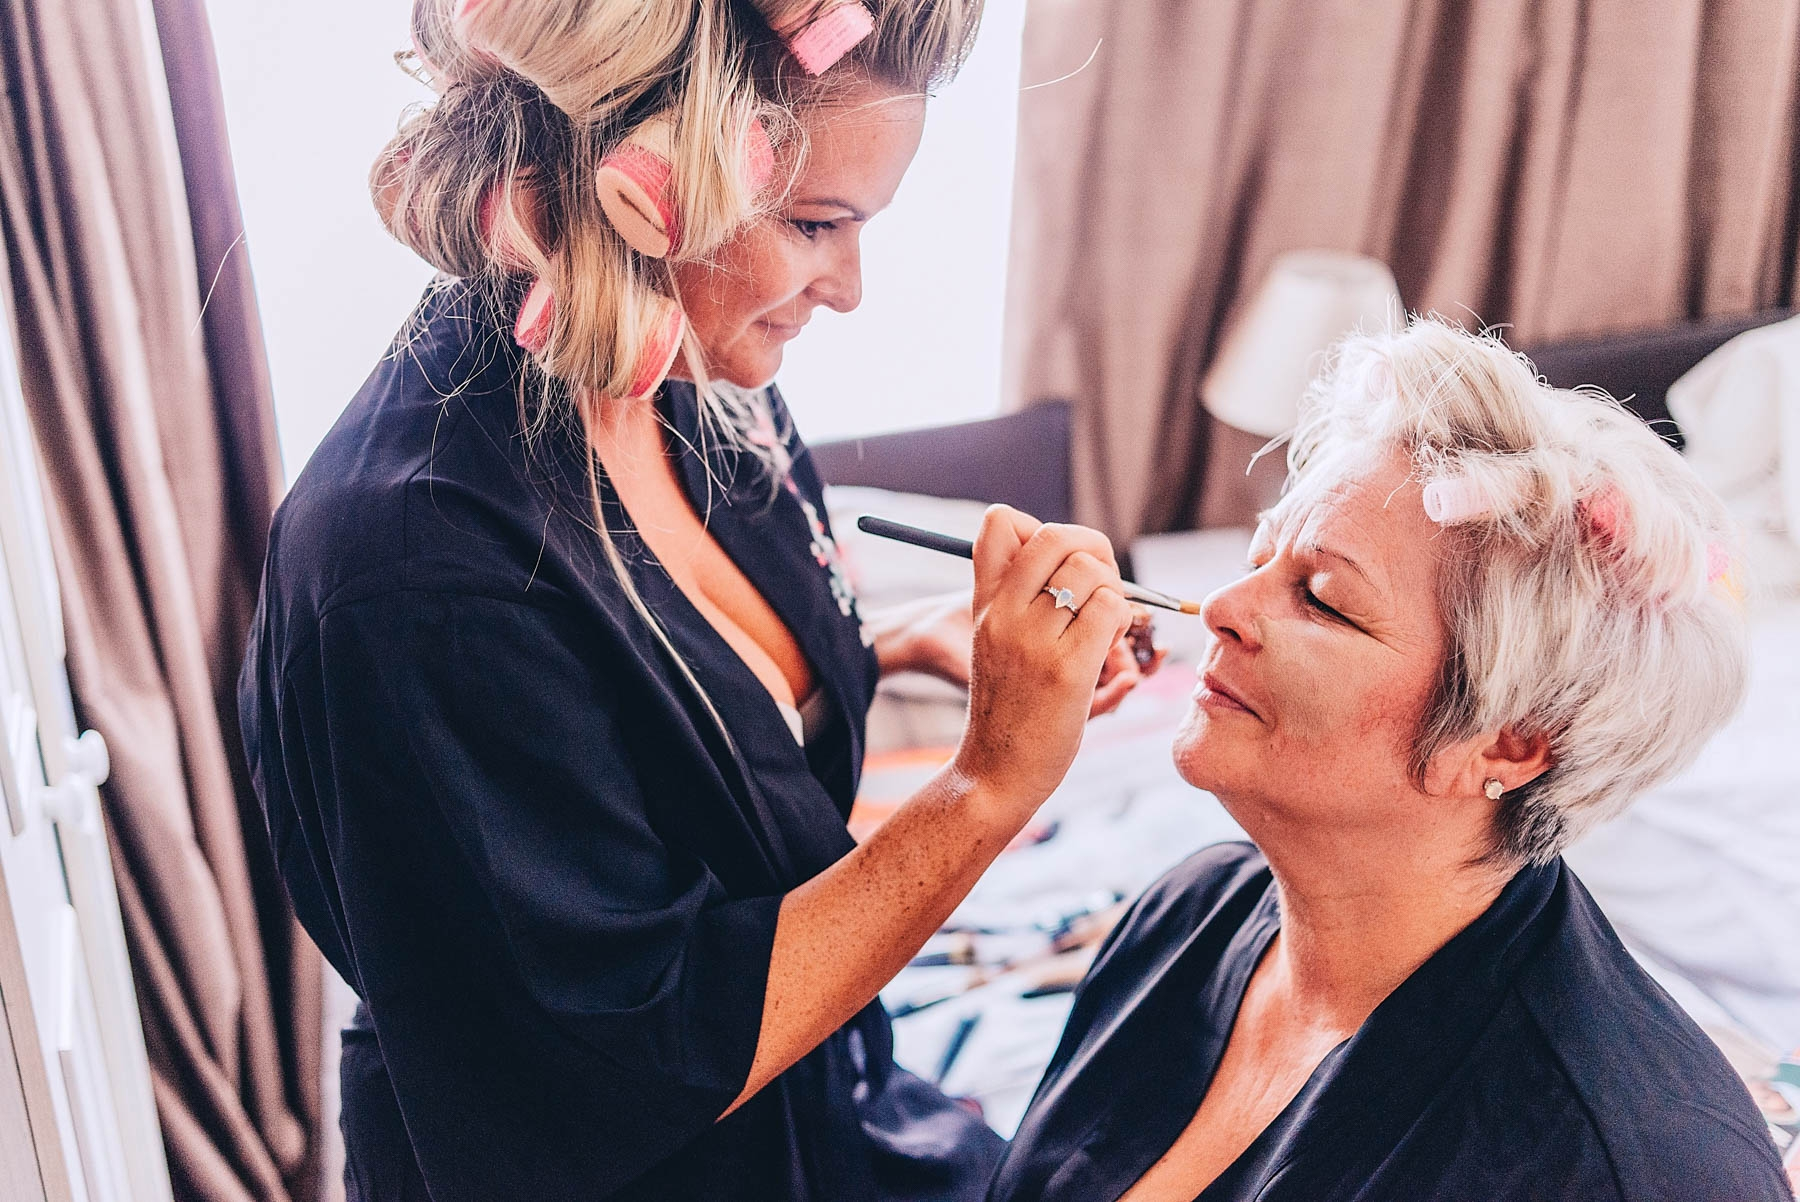 Daughter applying makeup to mother